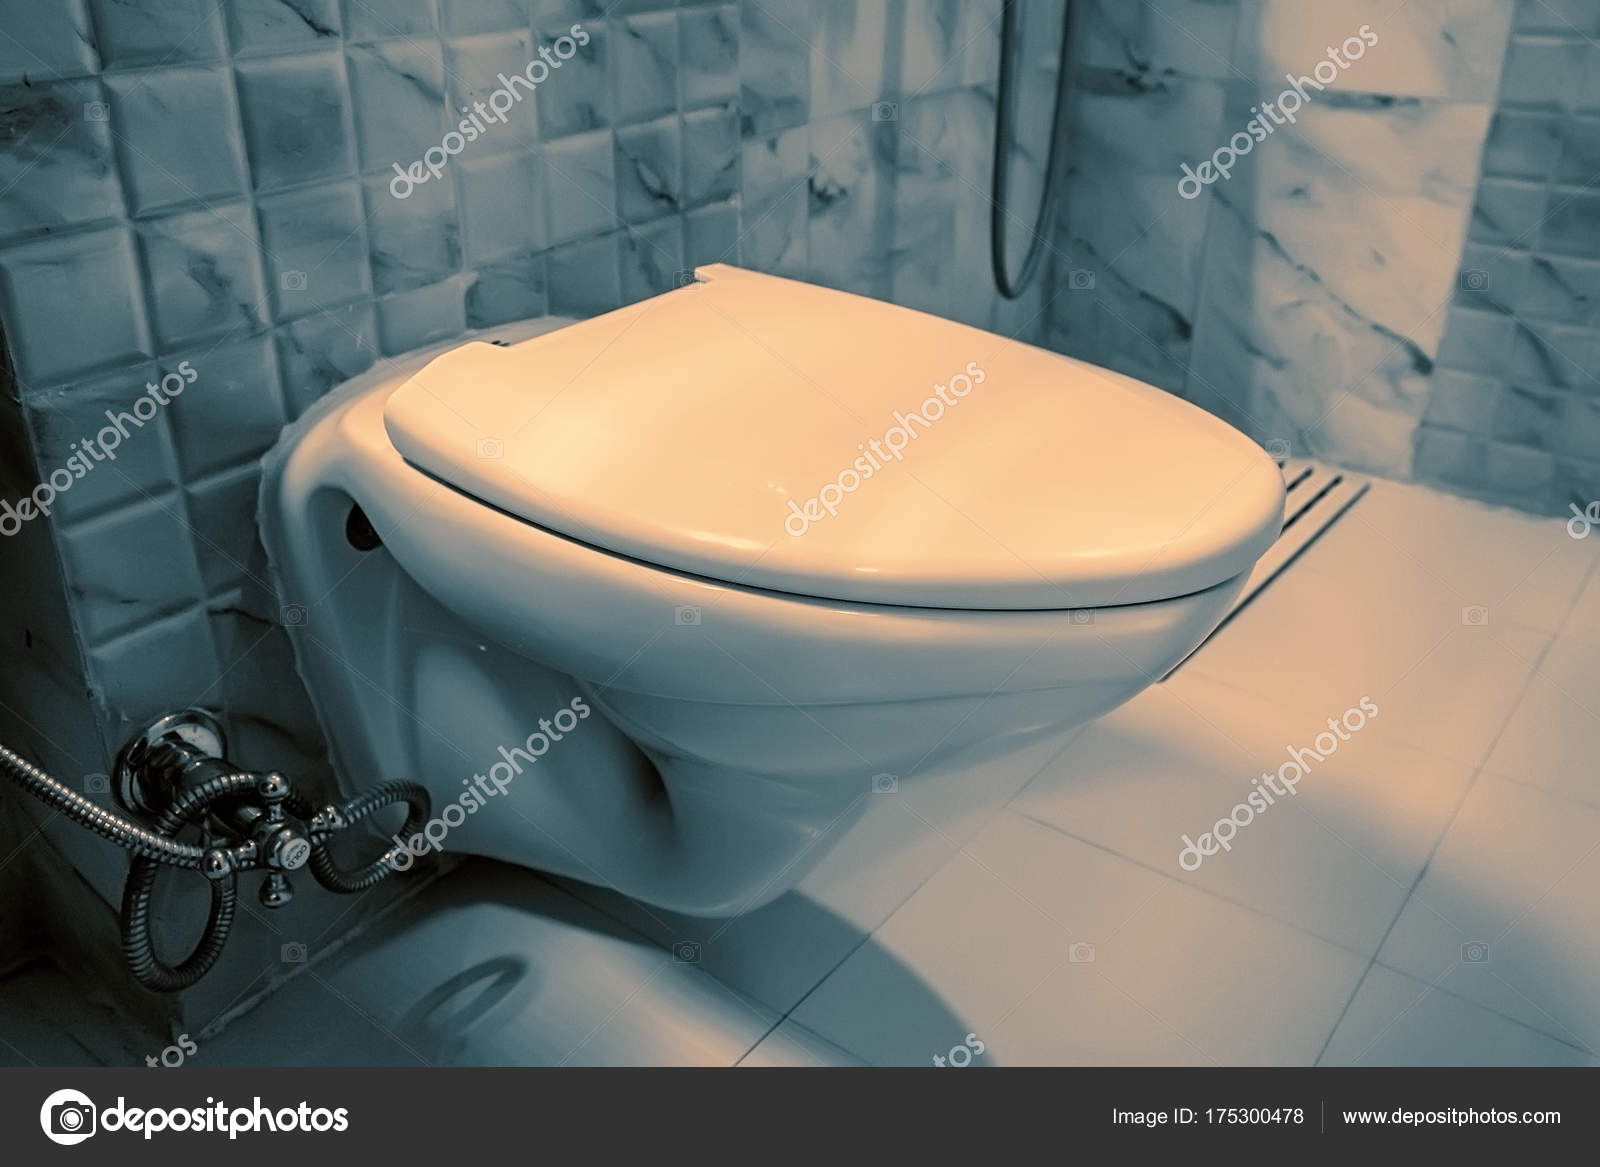 Flush toilet bowl in lavatory — Stock Photo © Yakov_Oskanov #175300478